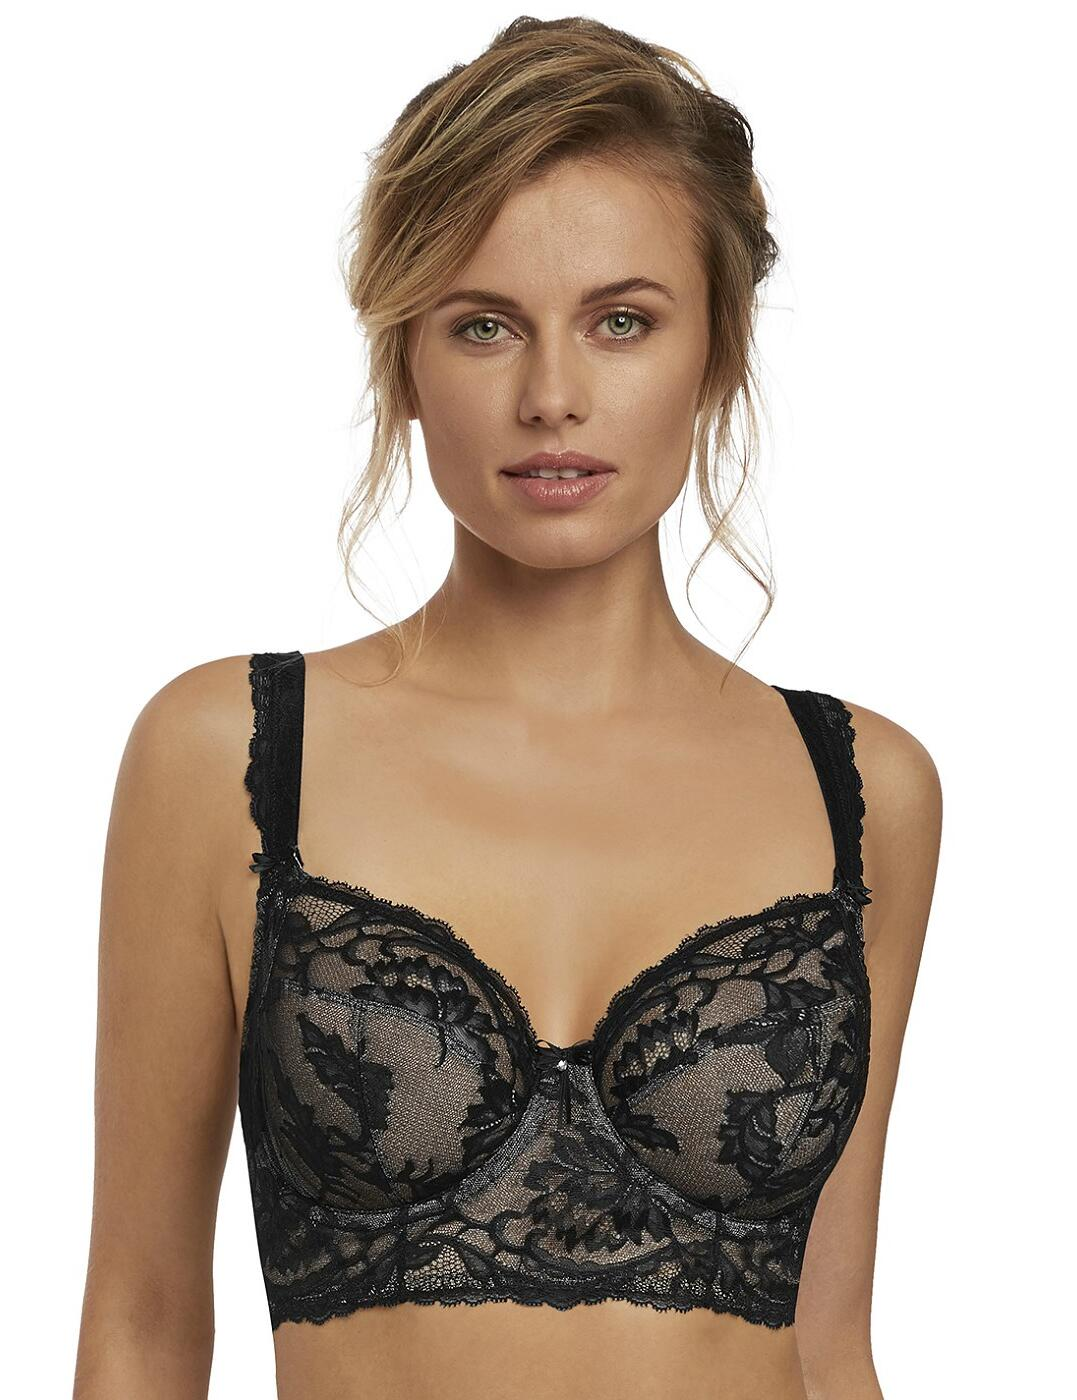 2063 Fantasie Bronte Longline Side Support Bra - 2063 Black